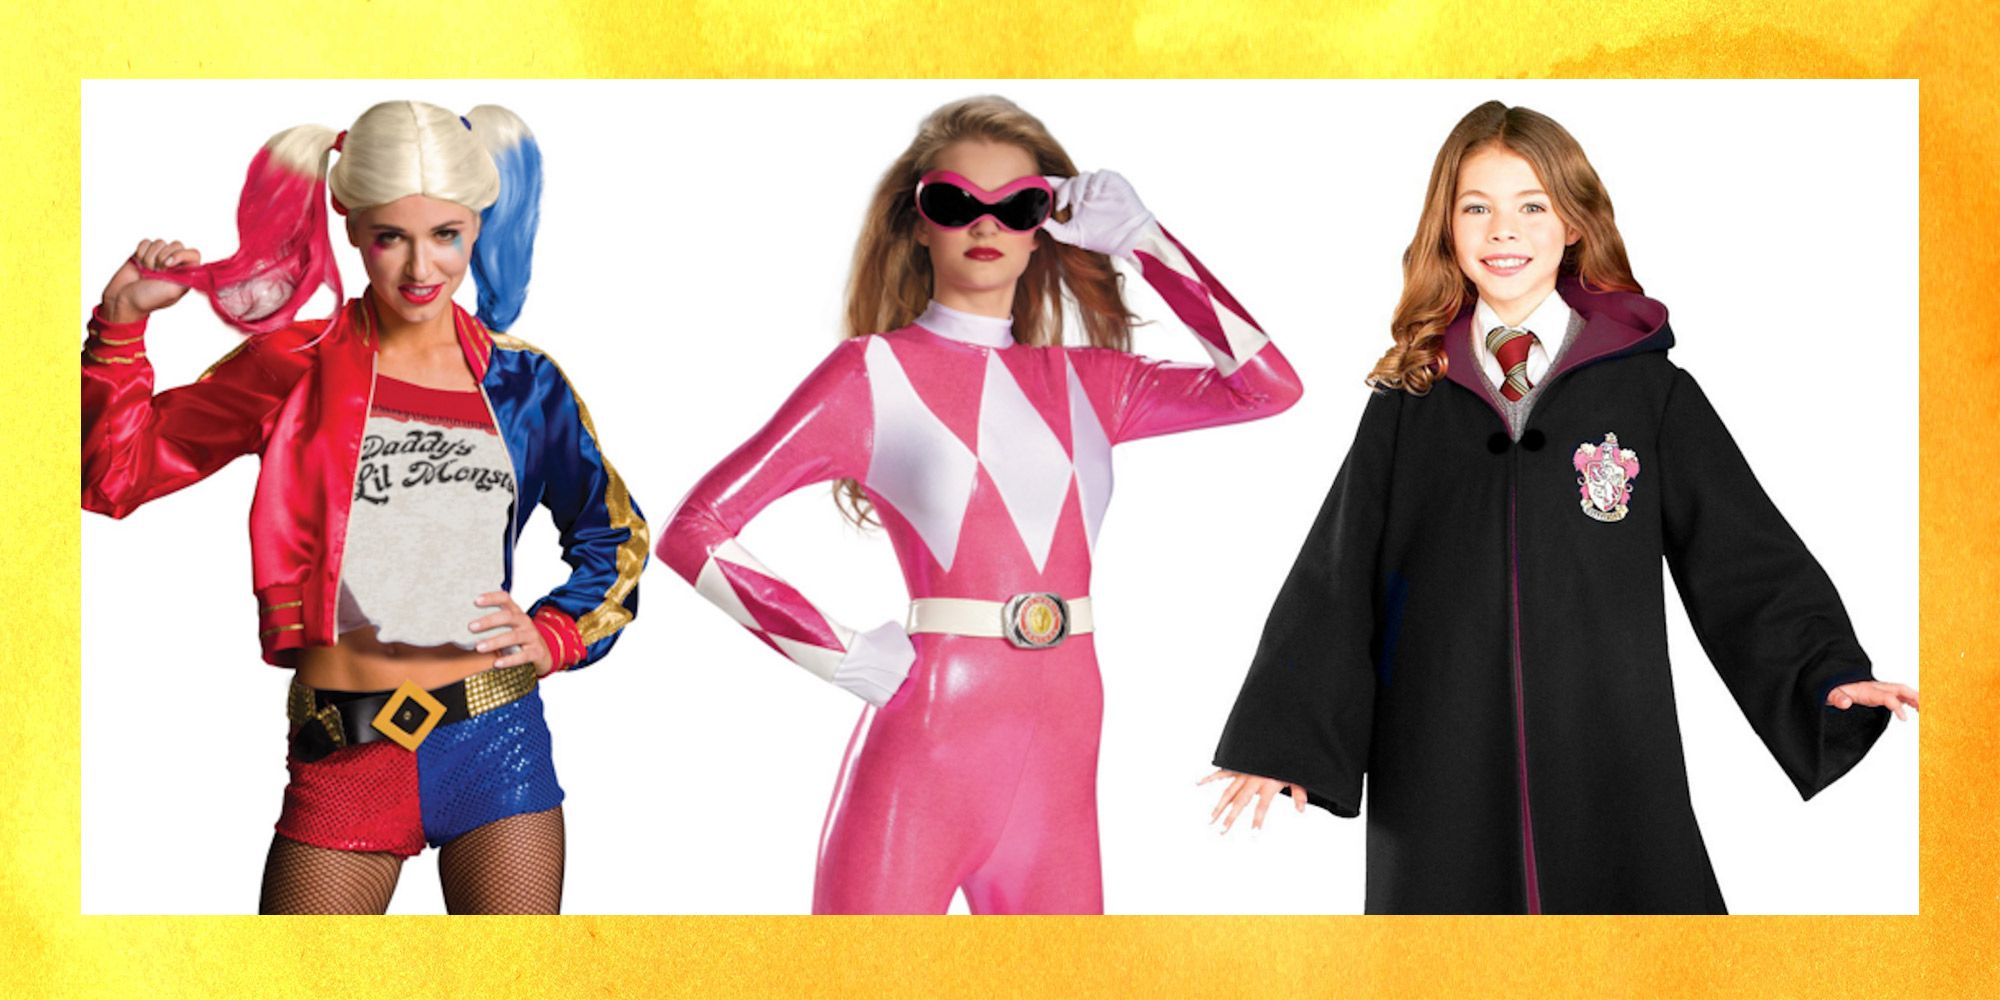 The Most Popular Halloween Costume the Year You Were Born